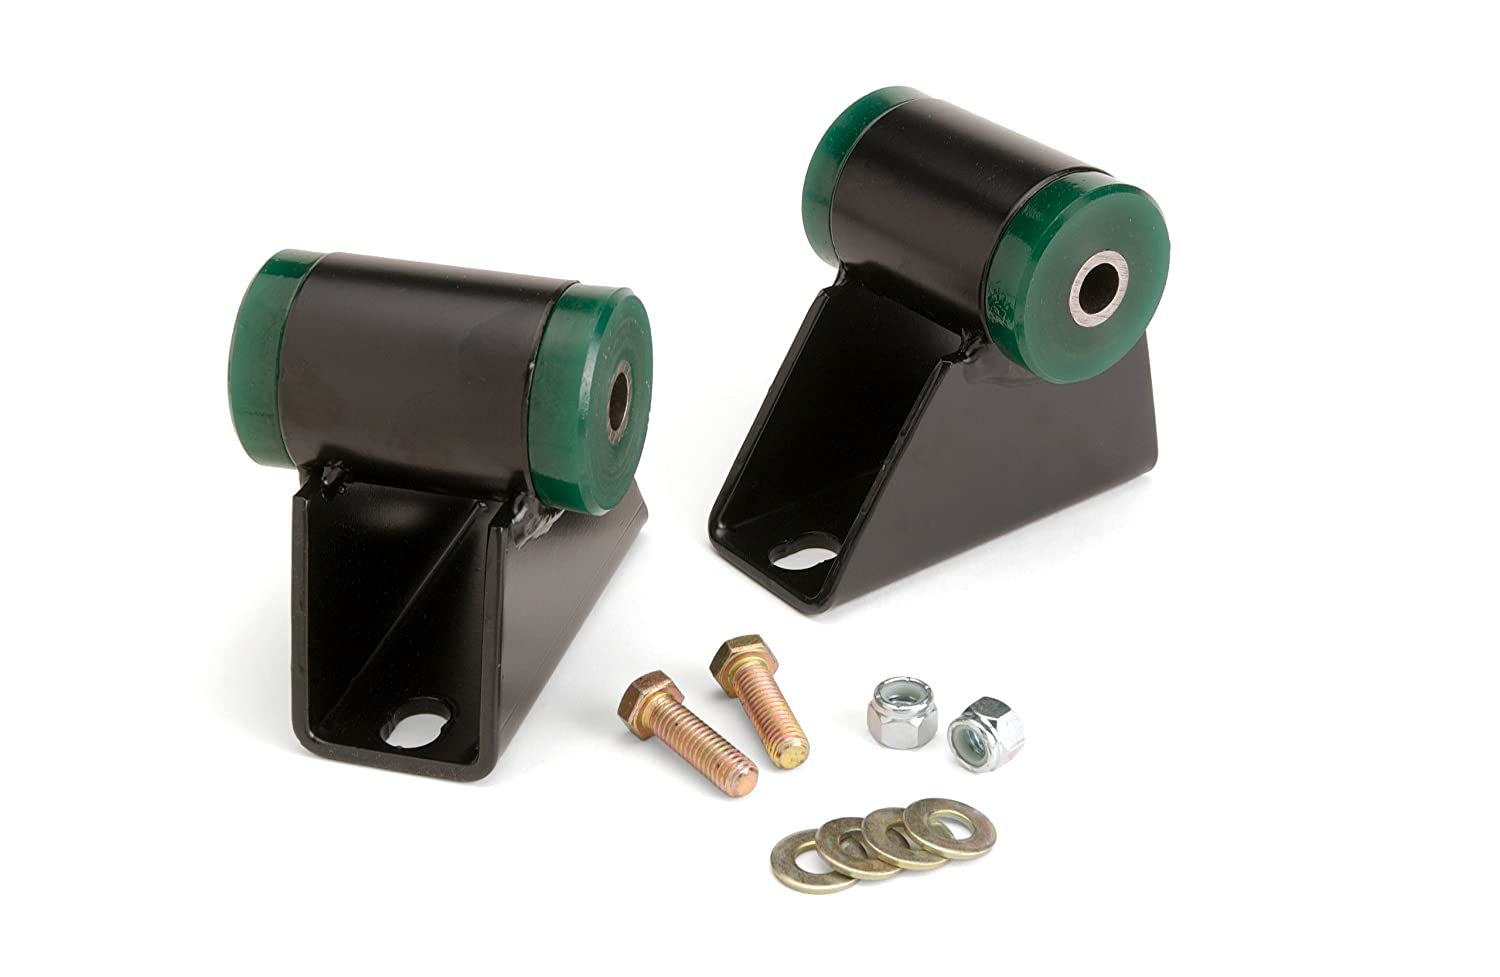 JKS CE9200 1' Rise Polyurethane Motor Mount Replacement Kit for Jeep TJ/YJ